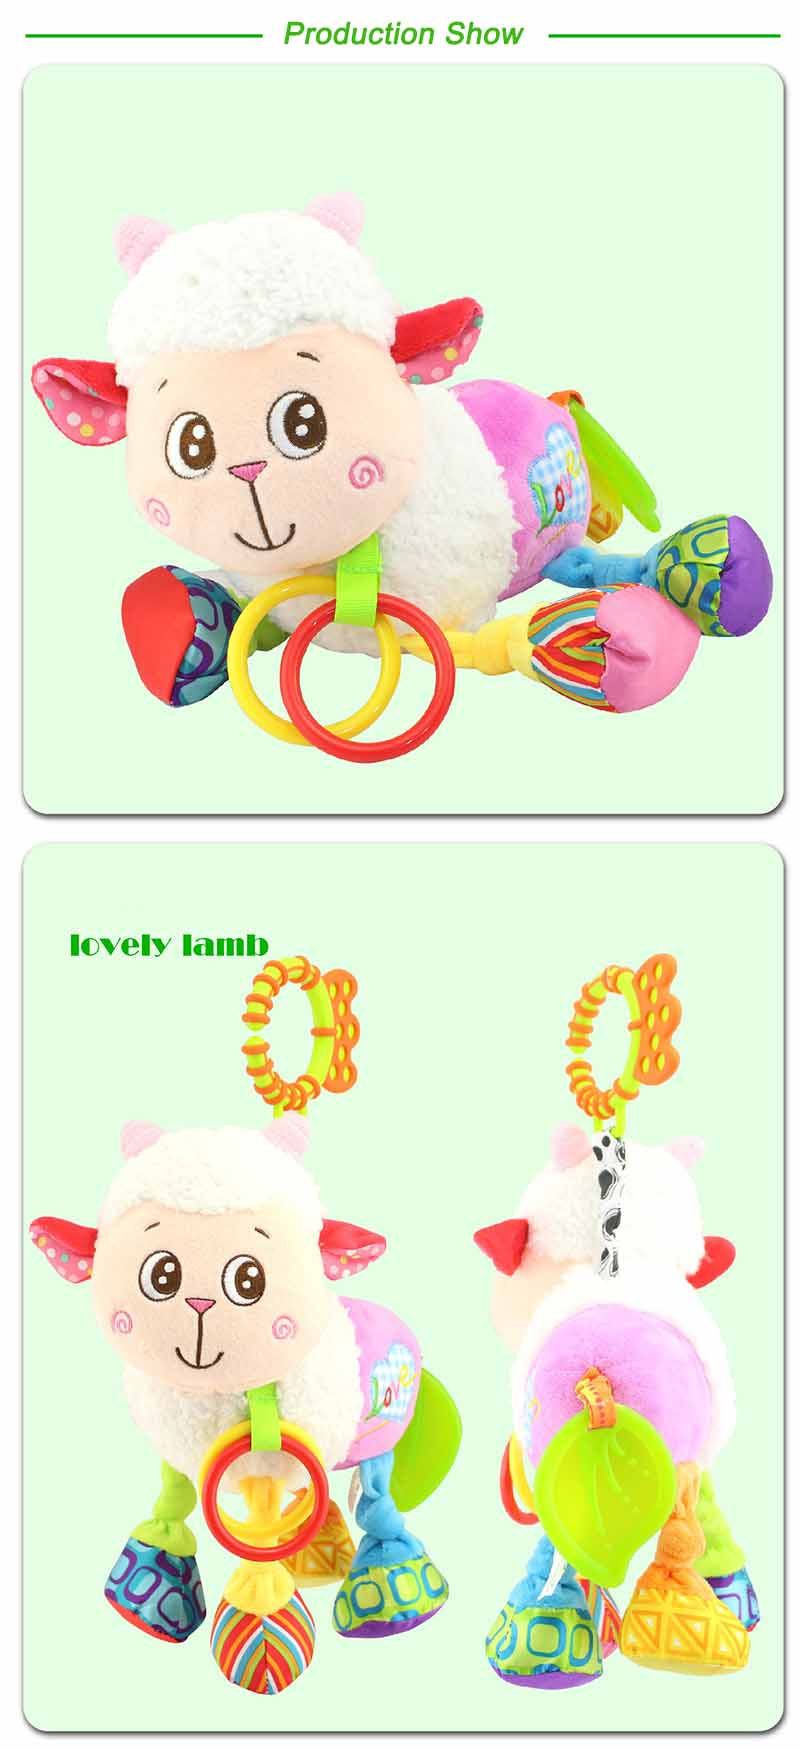 35*22CM Musical Cute Rattles Bed Crib Stroller Kids Stuffed Doll Vibrator Dog Hand Bell Shake RingToy With Teether D012 17